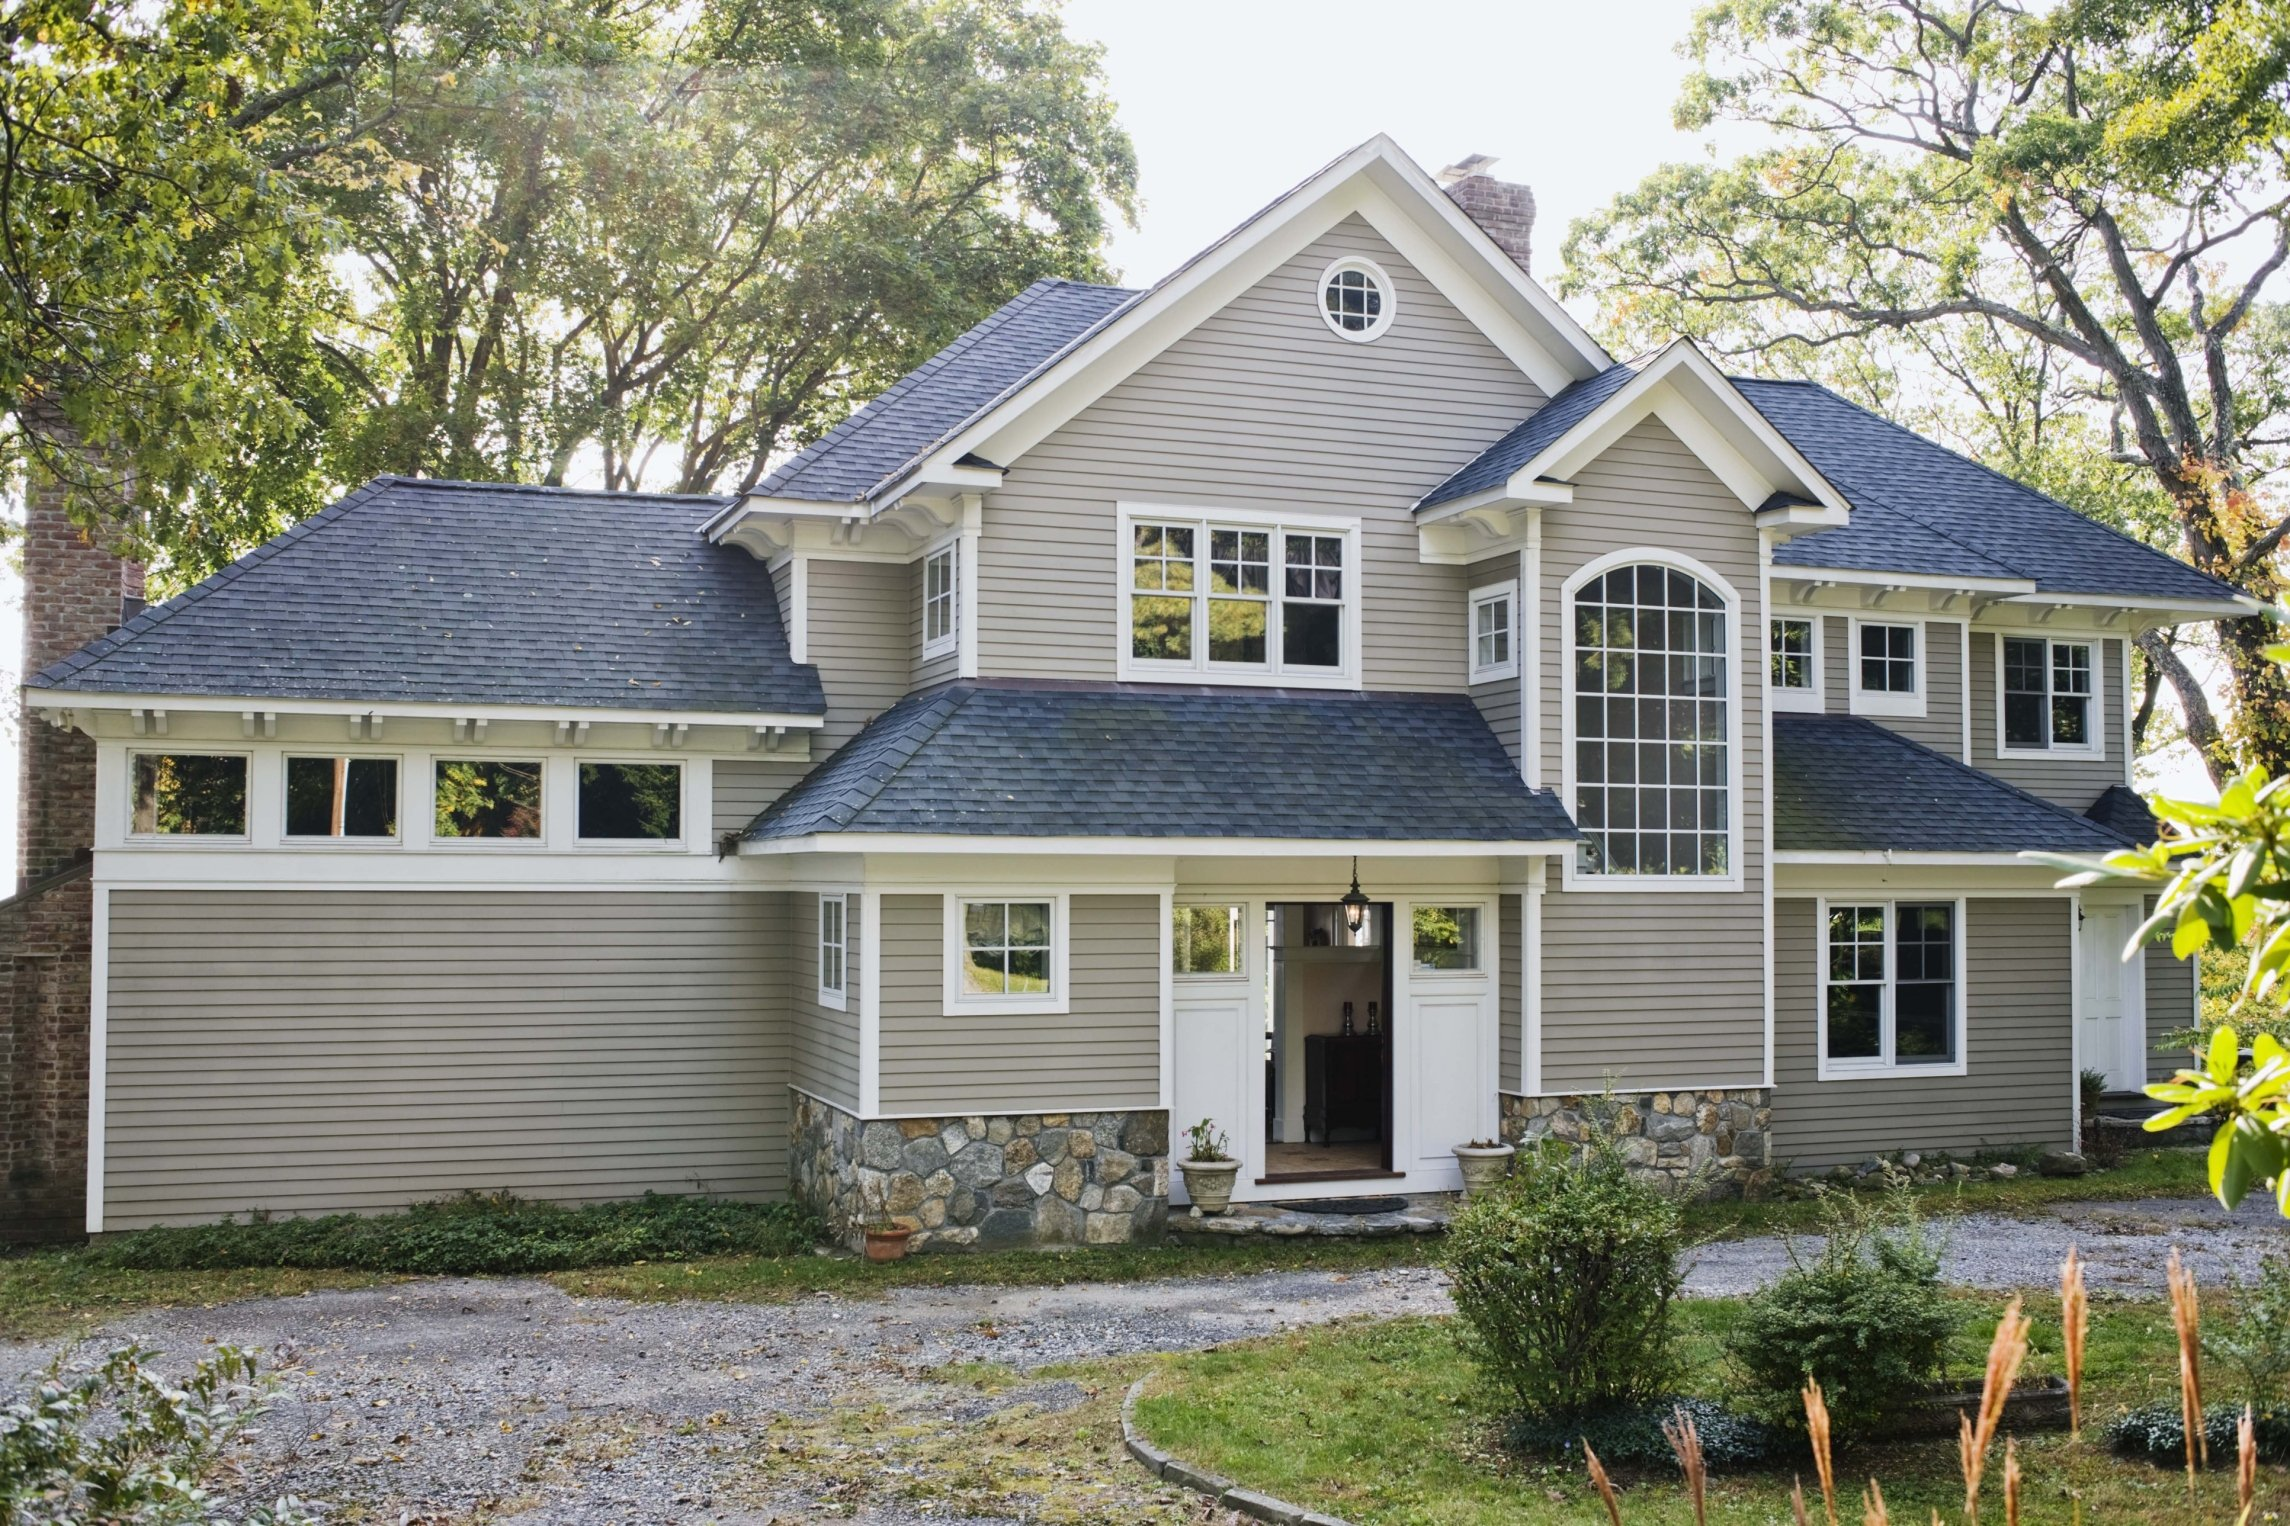 Siding Contractors in Lockport, NY